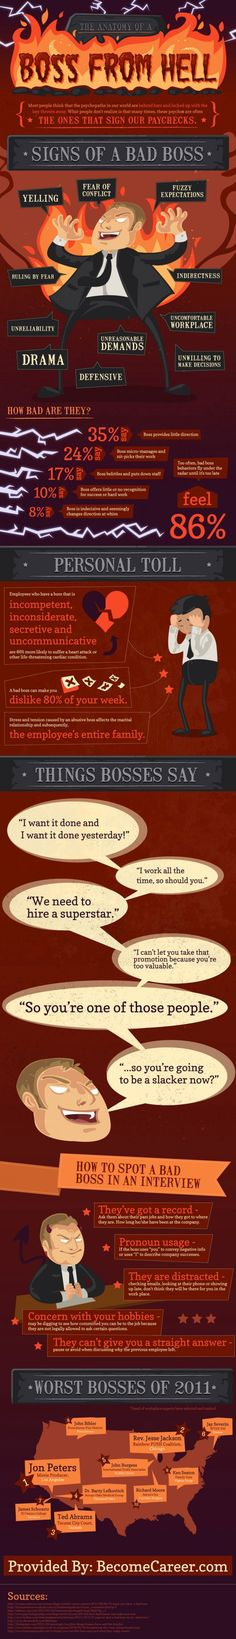 Signs of a Bad Boss - Never thought it could be like this, until experiencing it. Thank goodness the majority of them and myself are not in this category.